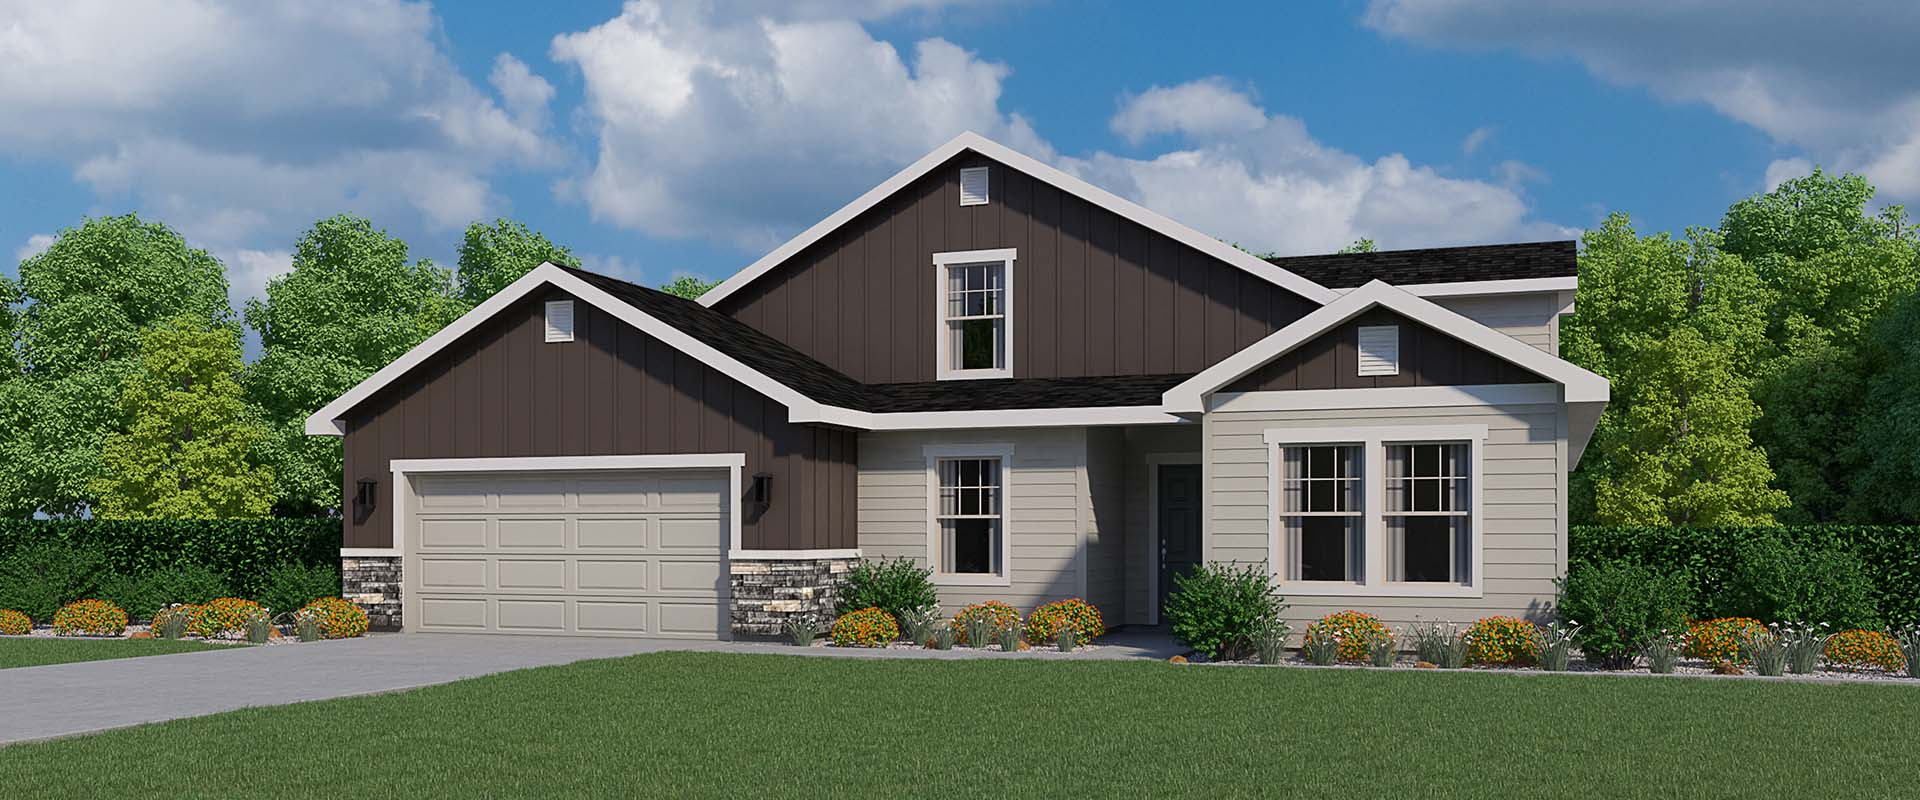 new-homes-boise-idaho-hubble-homes_0023_Opal Bonus Country pack 42.jpg